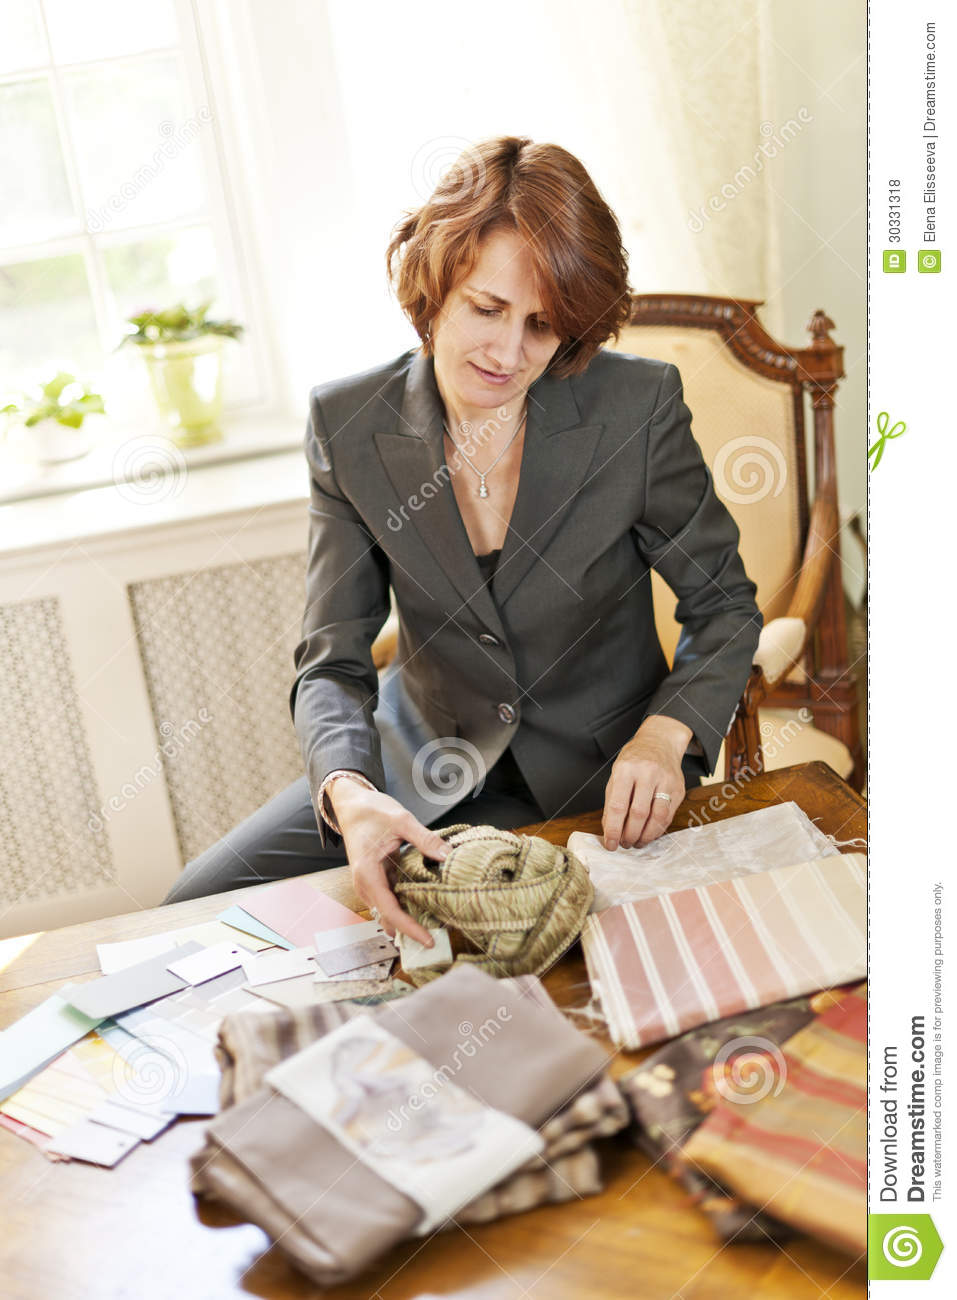 Female interior designer royalty free stock photos image Choosing an interior designer